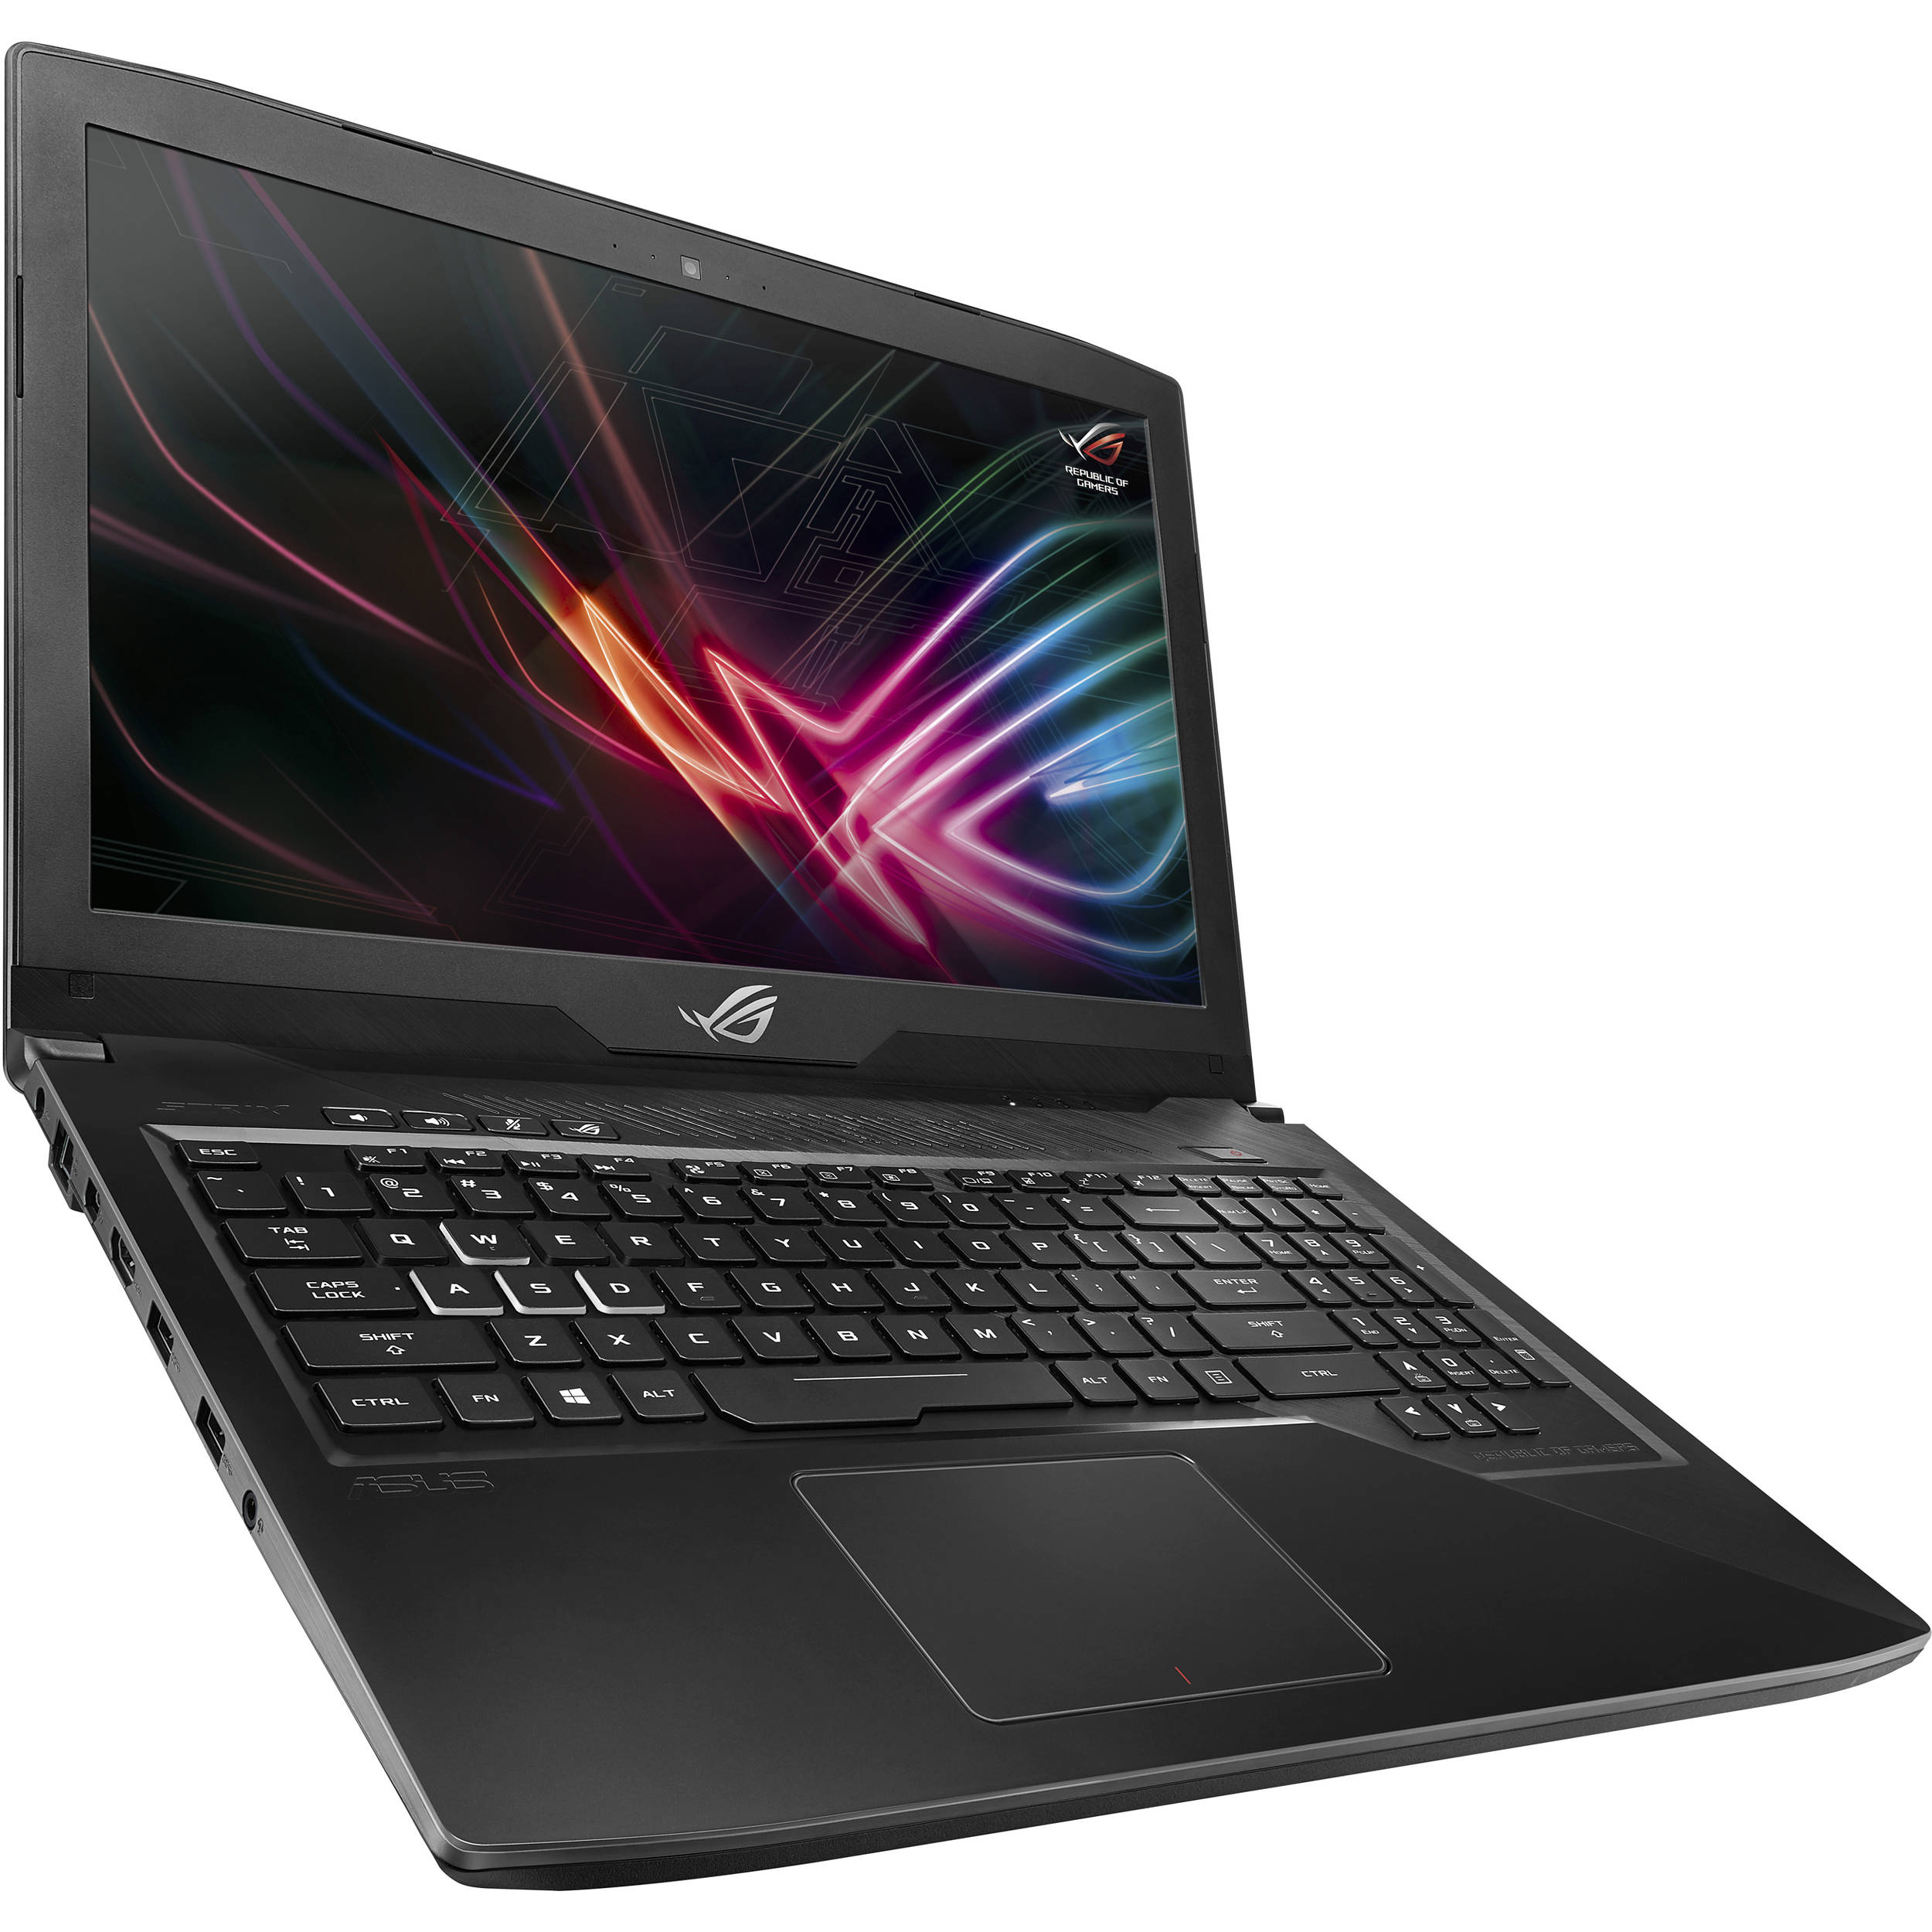 Asus 156 Republic Of Gamers Strix Gl503vd Db71 Notebook Gaming